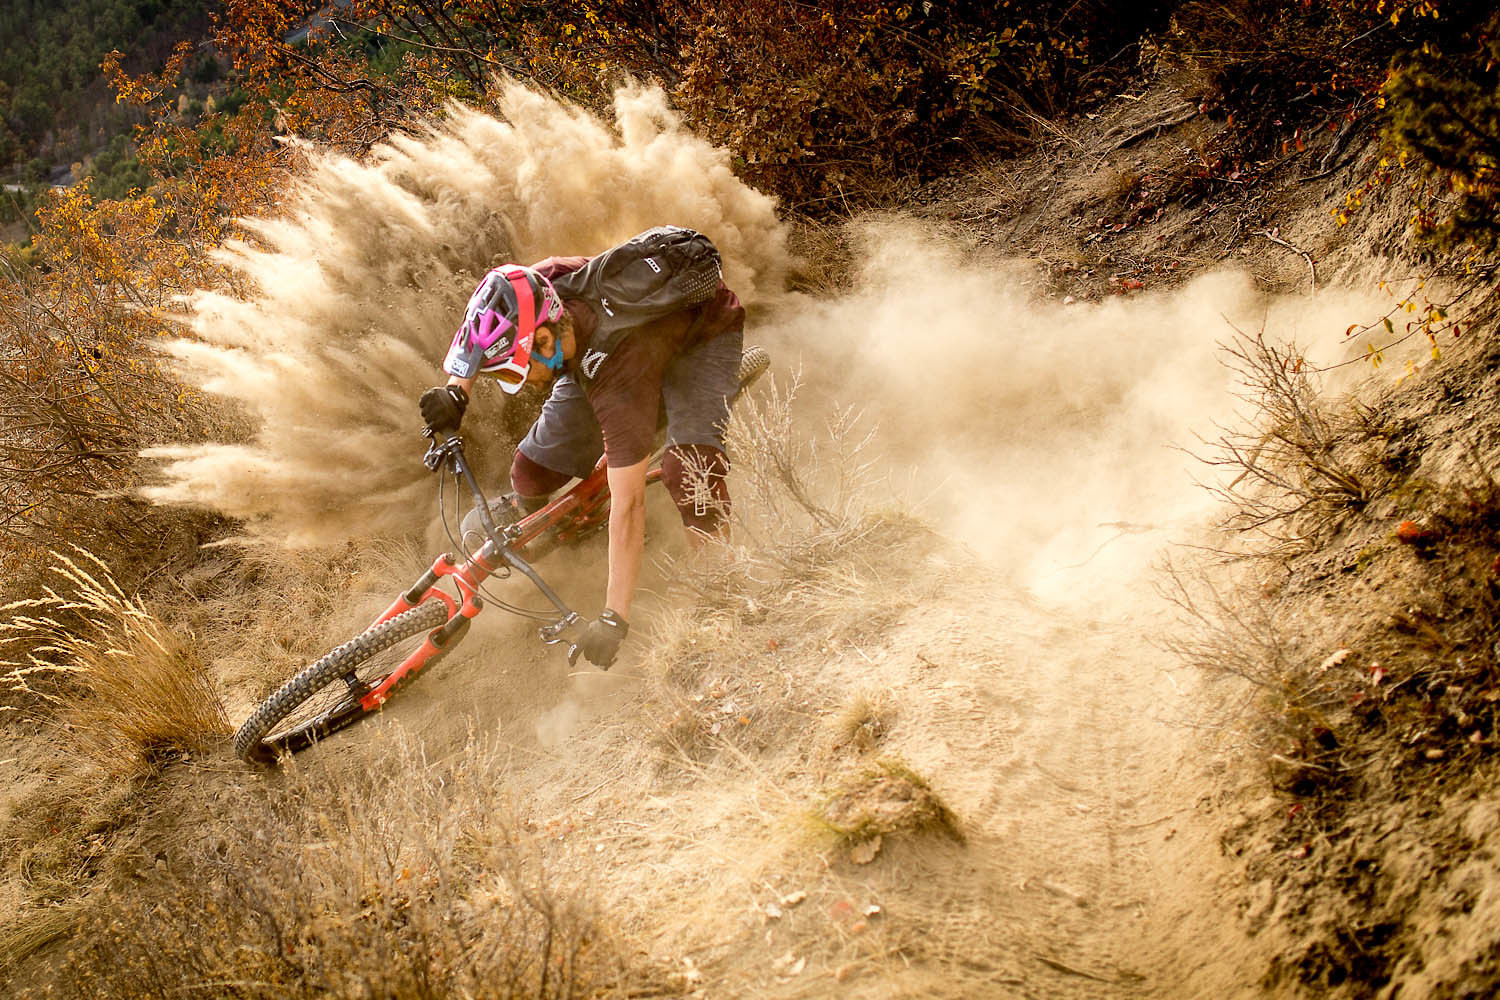 EXPLOSION - Hannes Klausner - Mountain Biking Pictures - Vital MTB